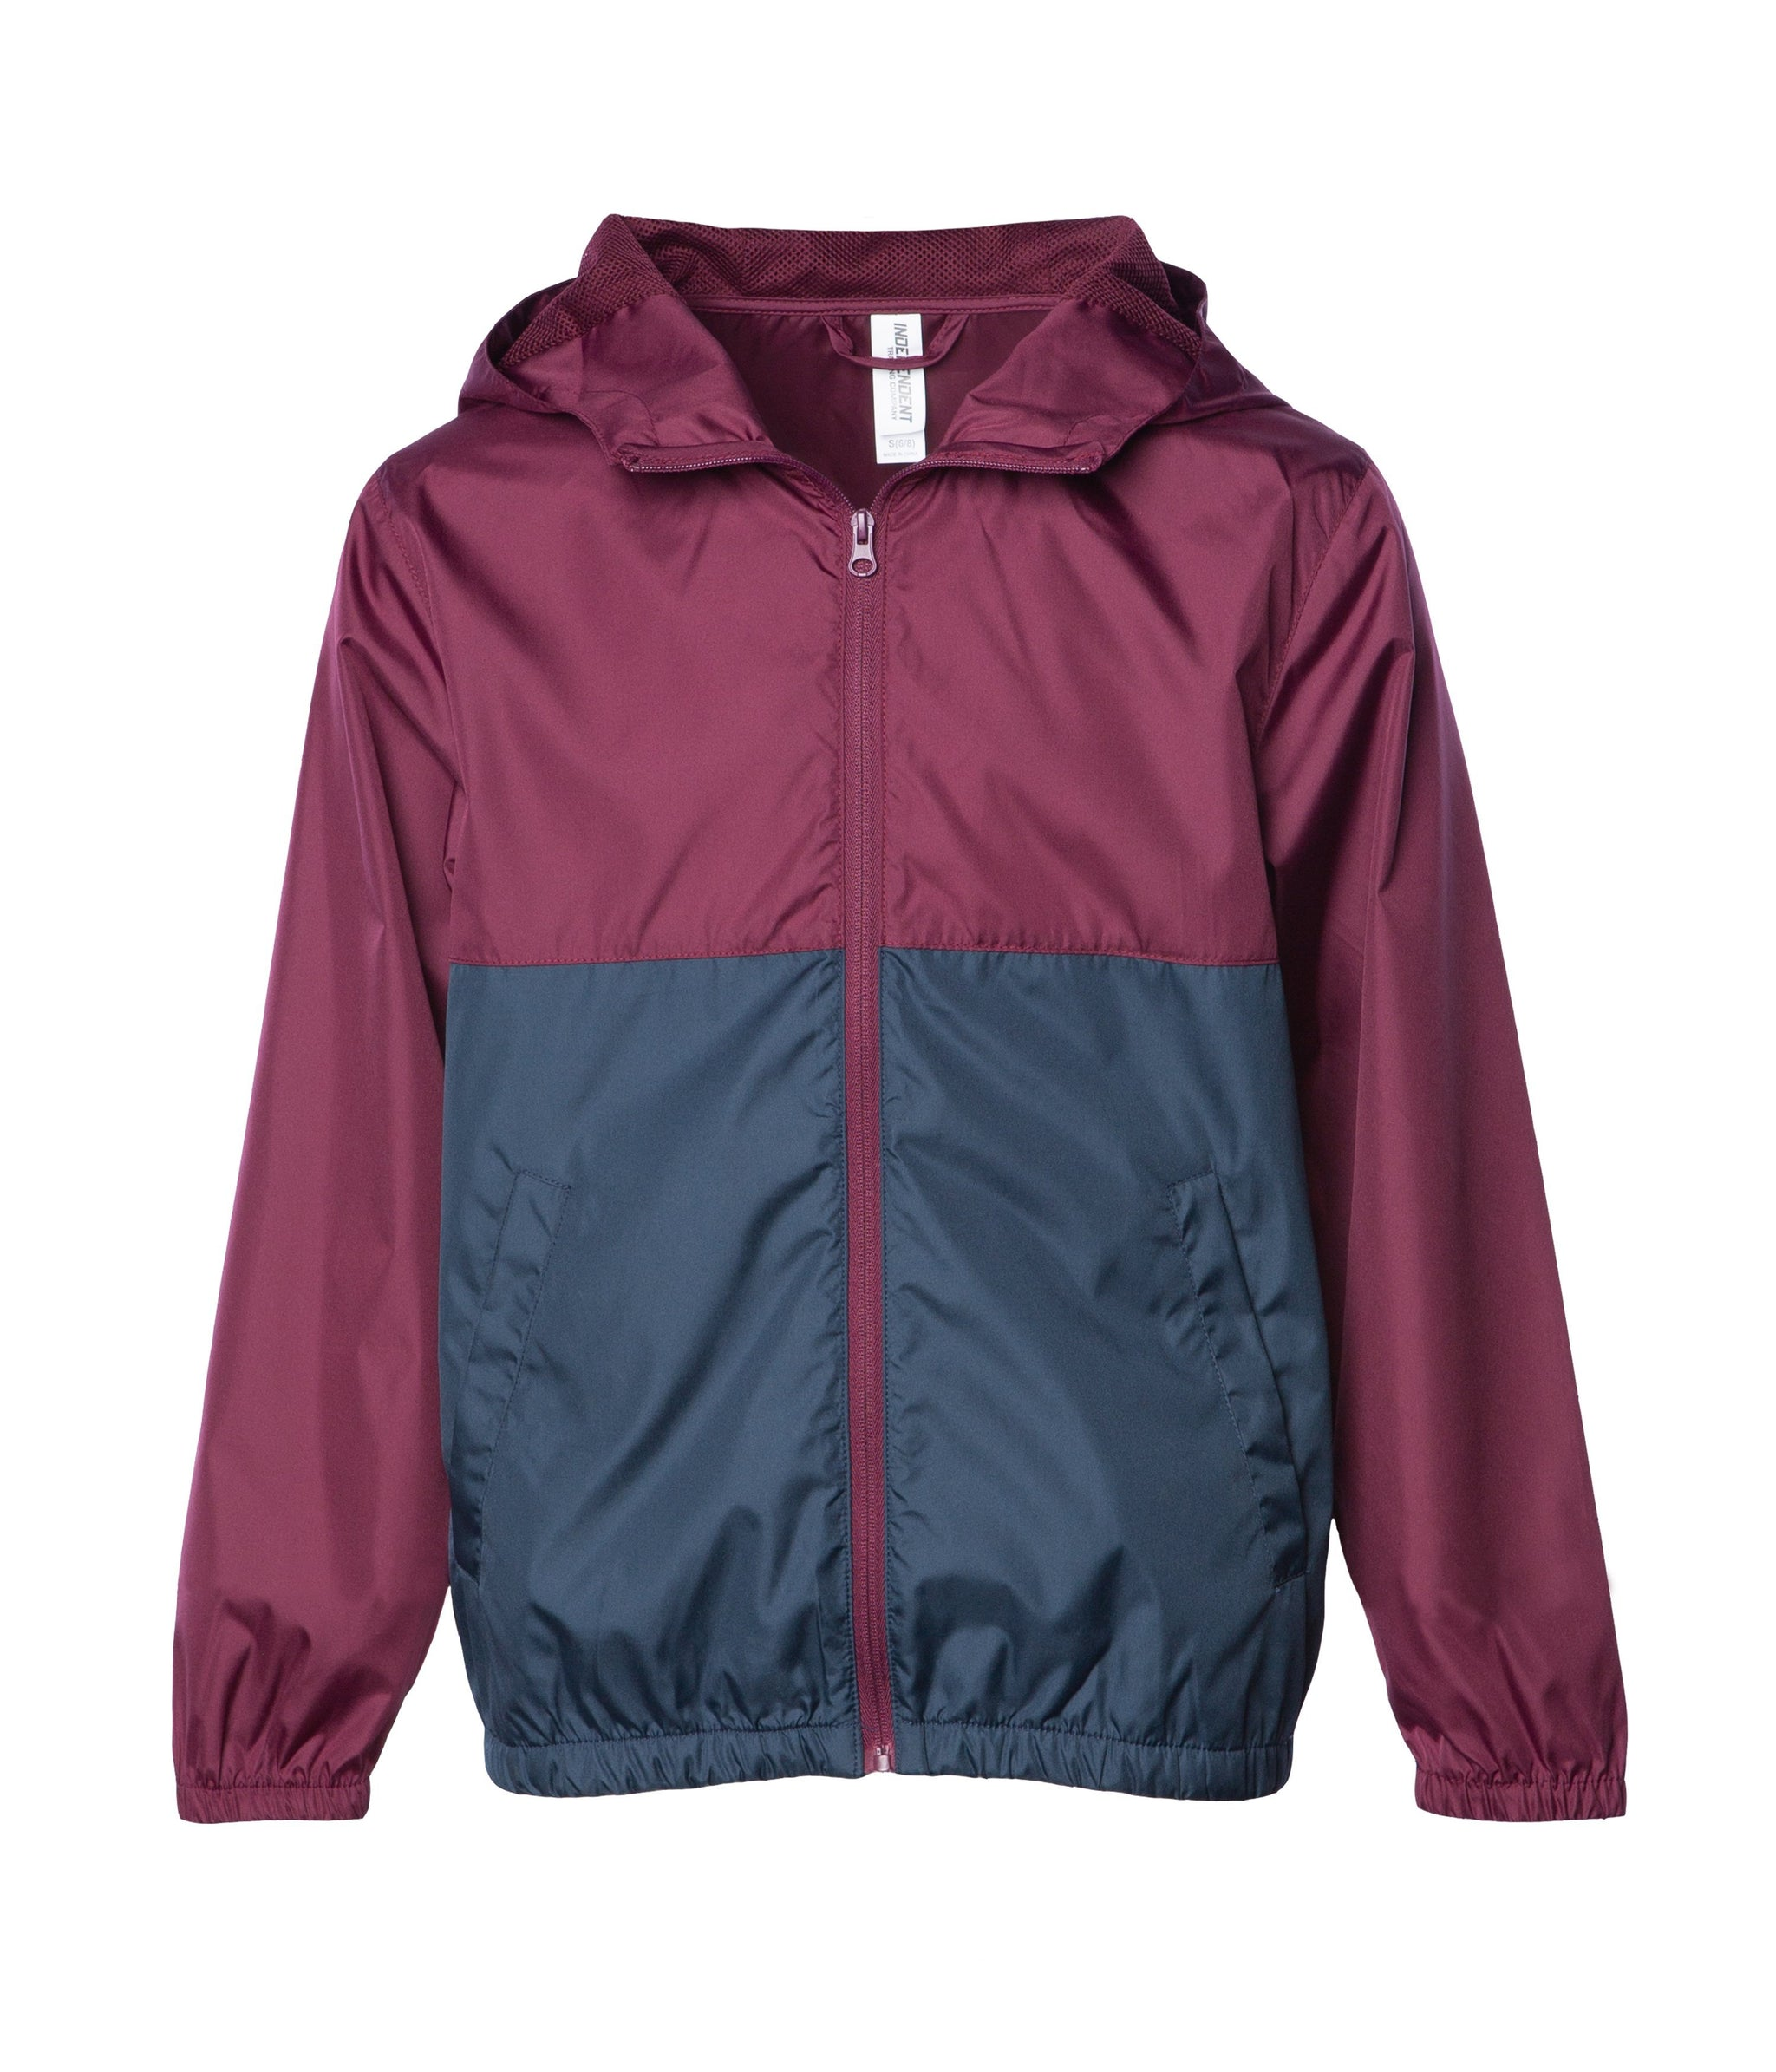 97ccaf3614ef Youth Lightweight Windbreaker Jacket